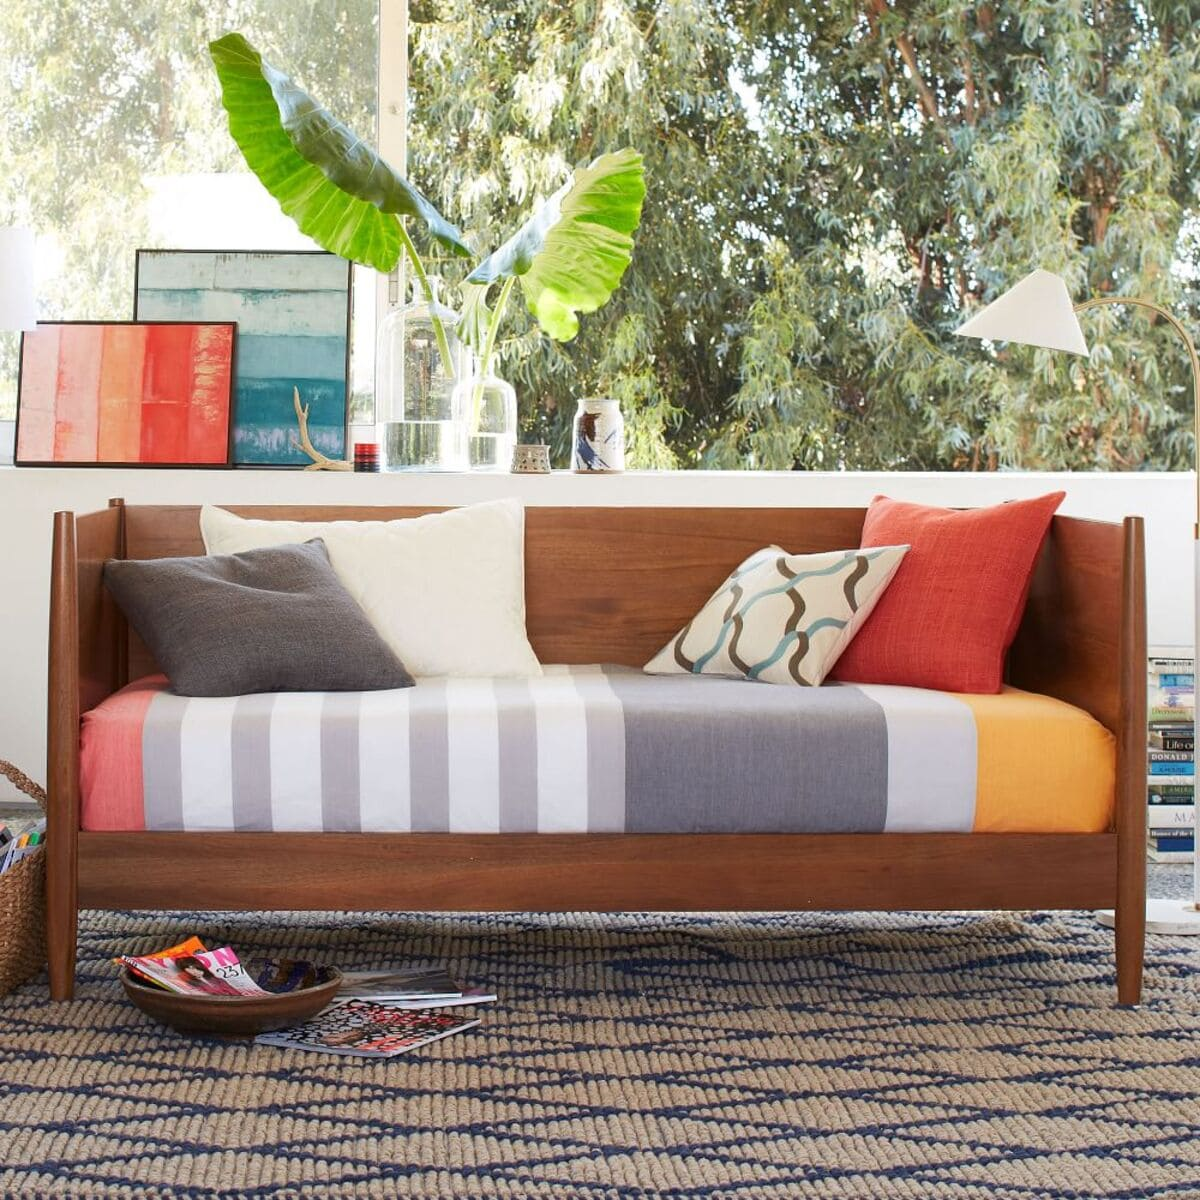 daybed 20 - 20 delightful daybeds that easily convert into comfortable beds